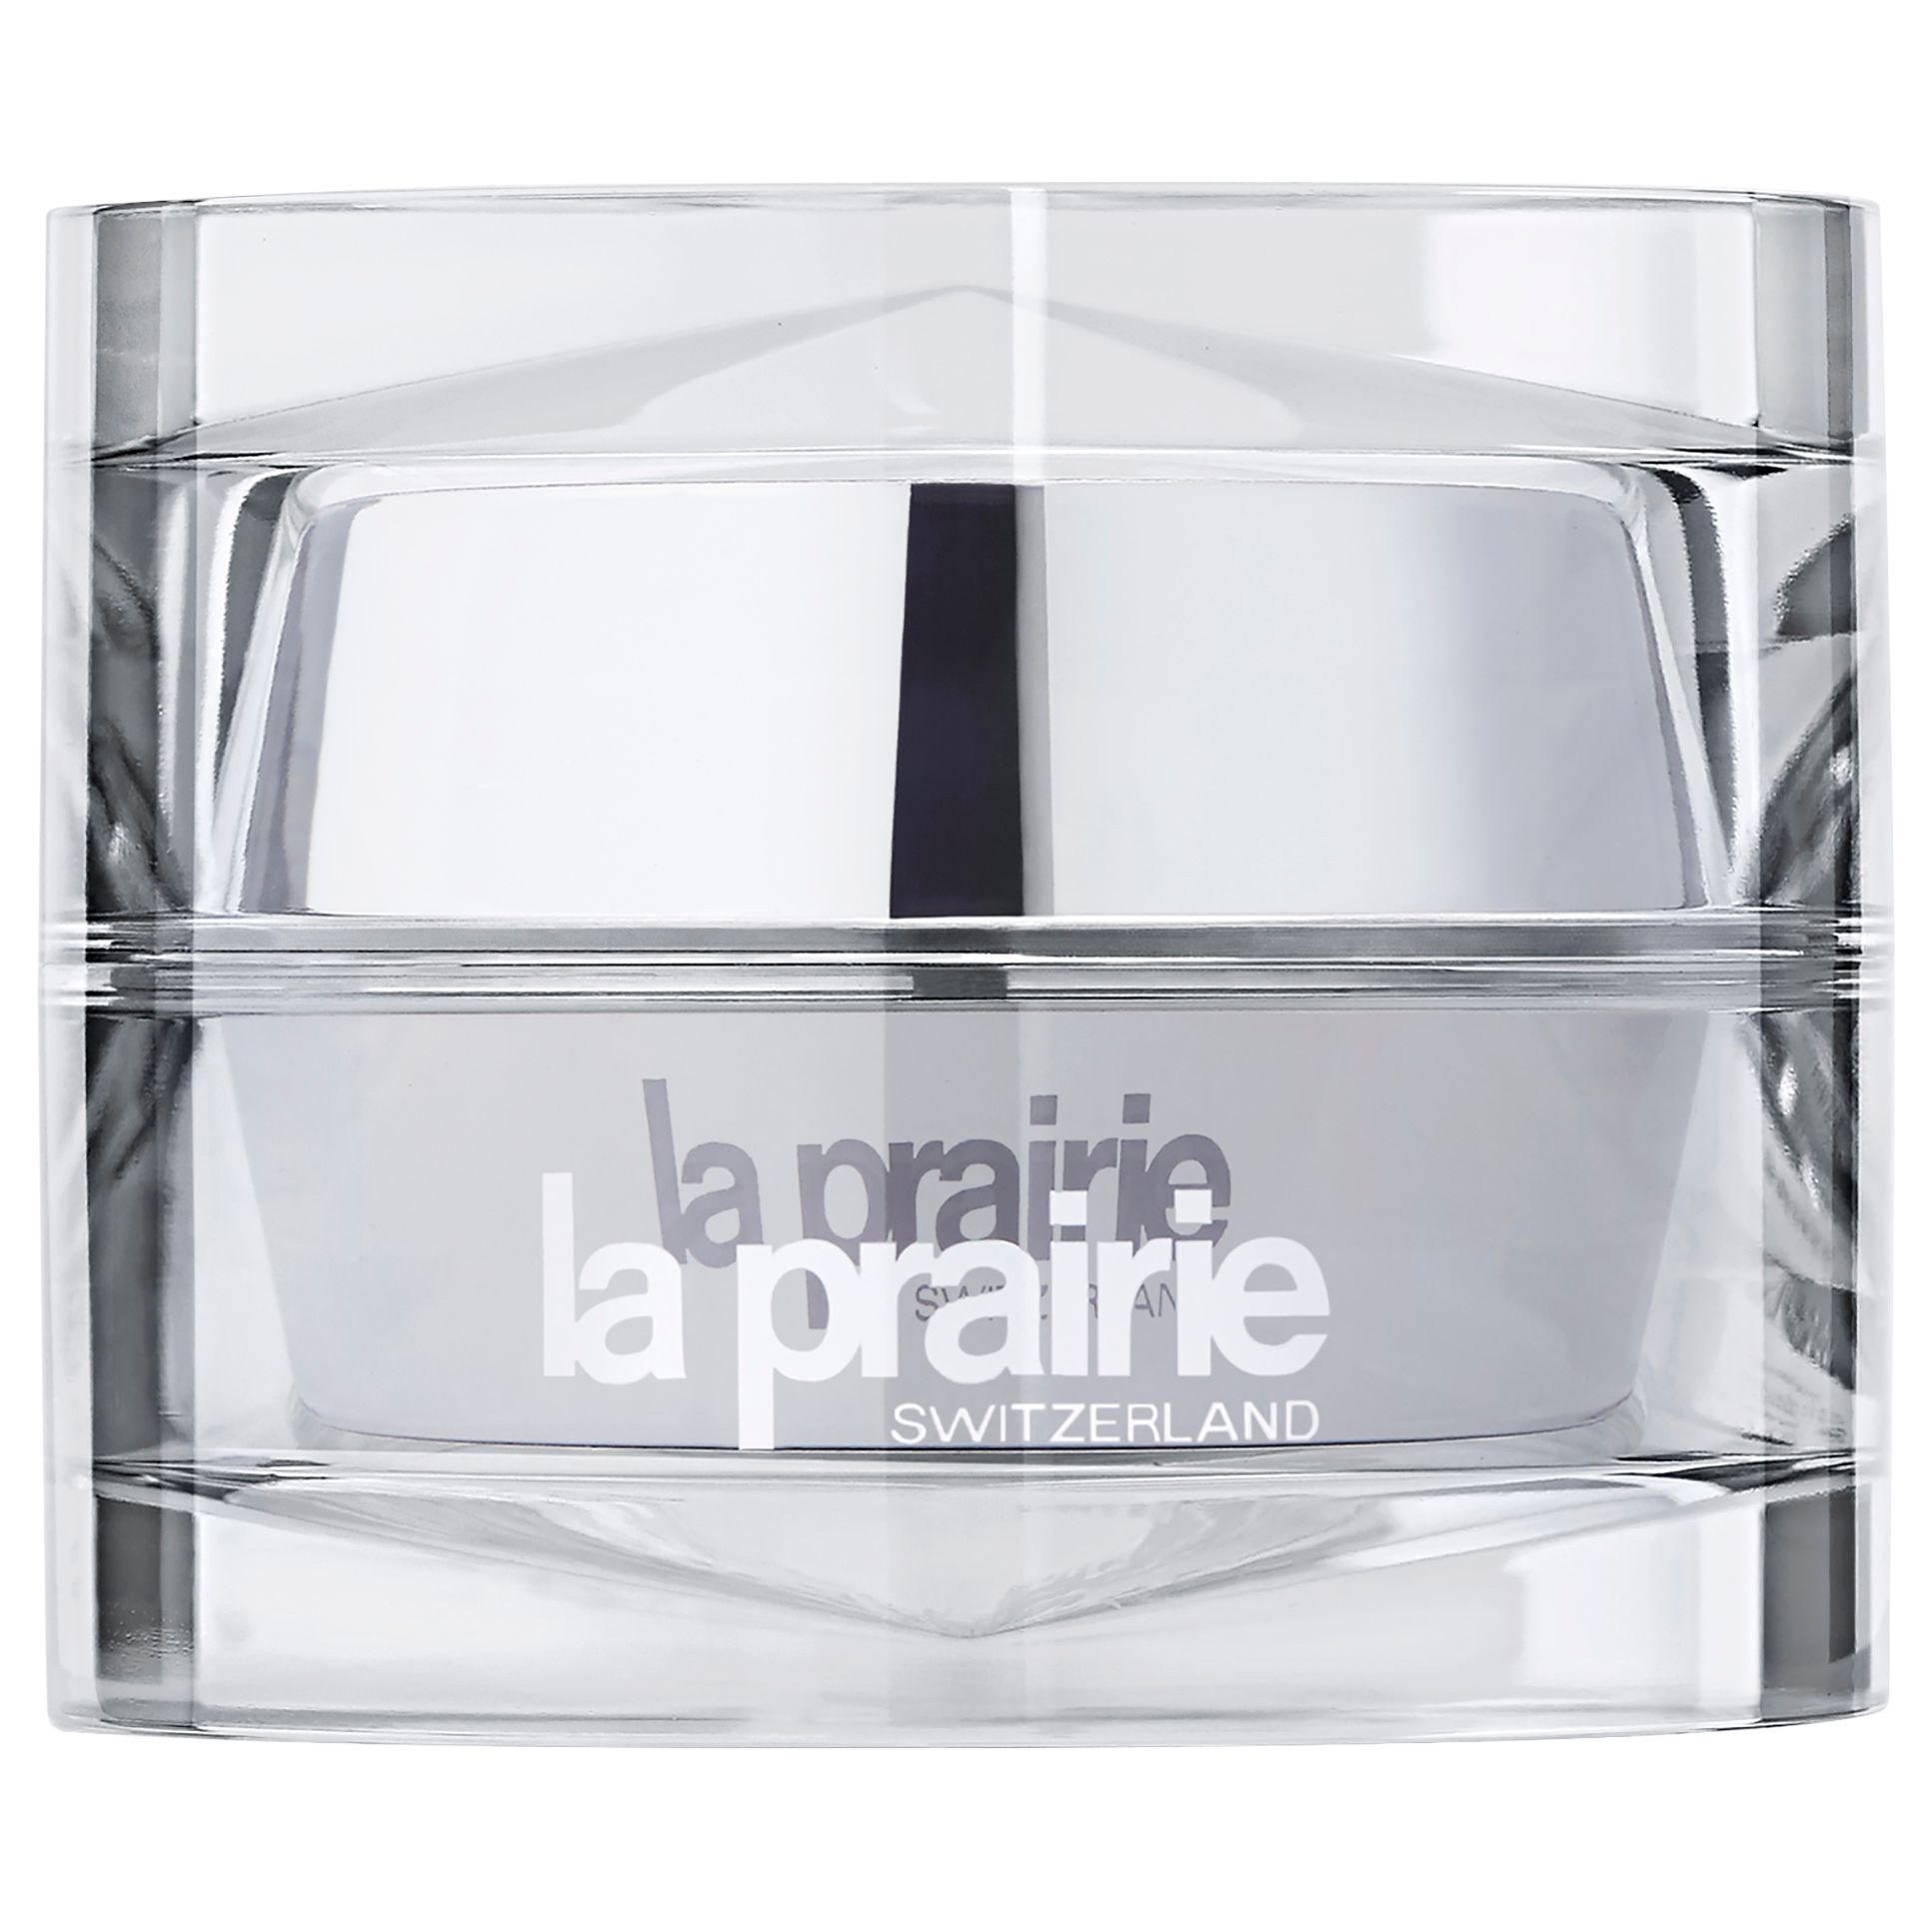 La Prairie La Prairie CellularEye Cream Platinum Rare, 20ml